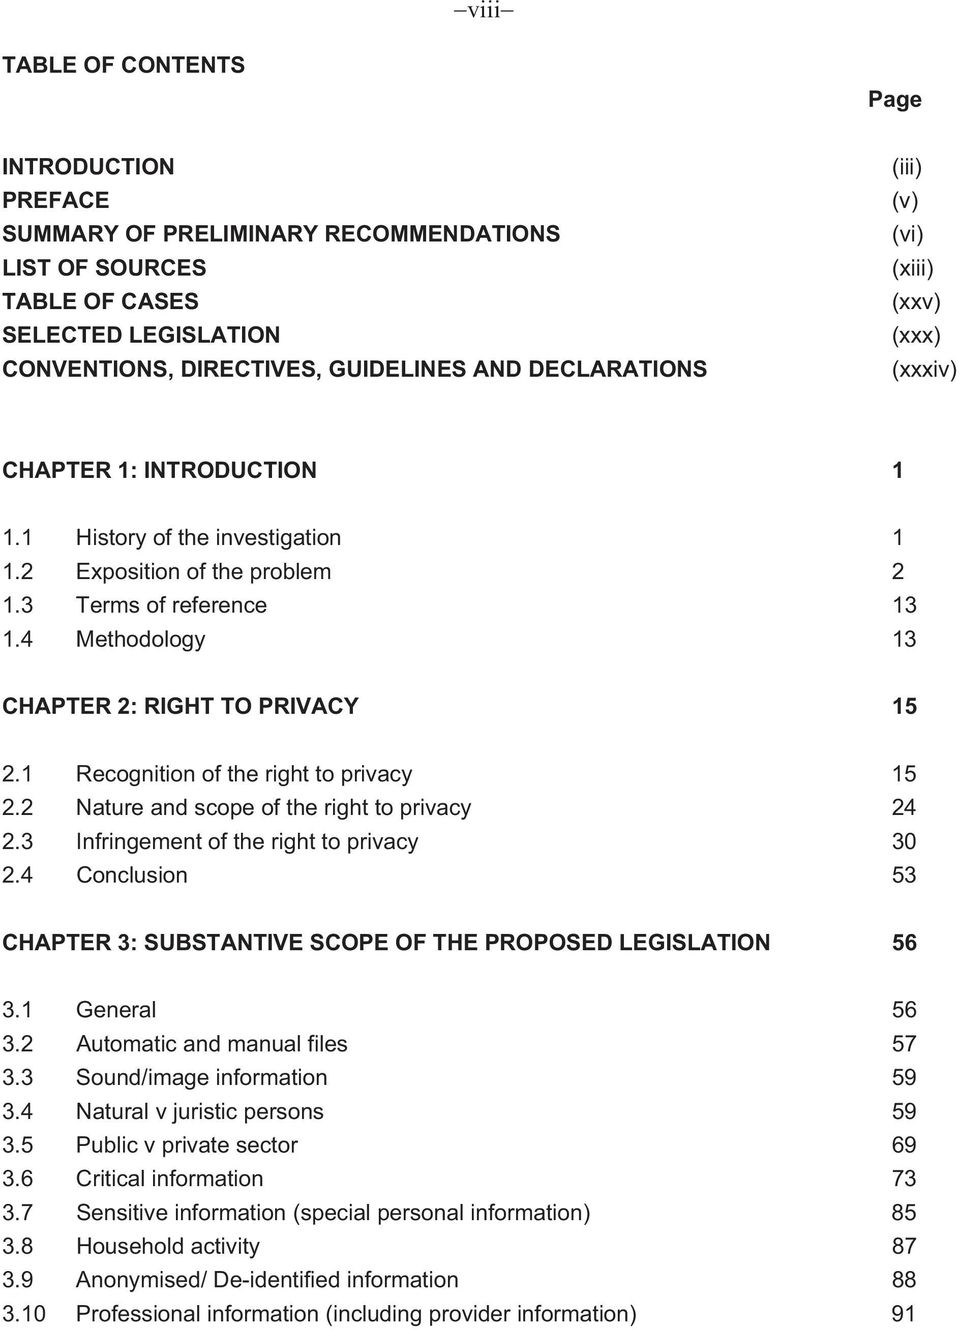 4 Methodology 13 CHAPTER 2: RIGHT TO PRIVACY 15 2.1 Recognition of the right to privacy 15 2.2 Nature and scope of the right to privacy 24 2.3 Infringement of the right to privacy 30 2.